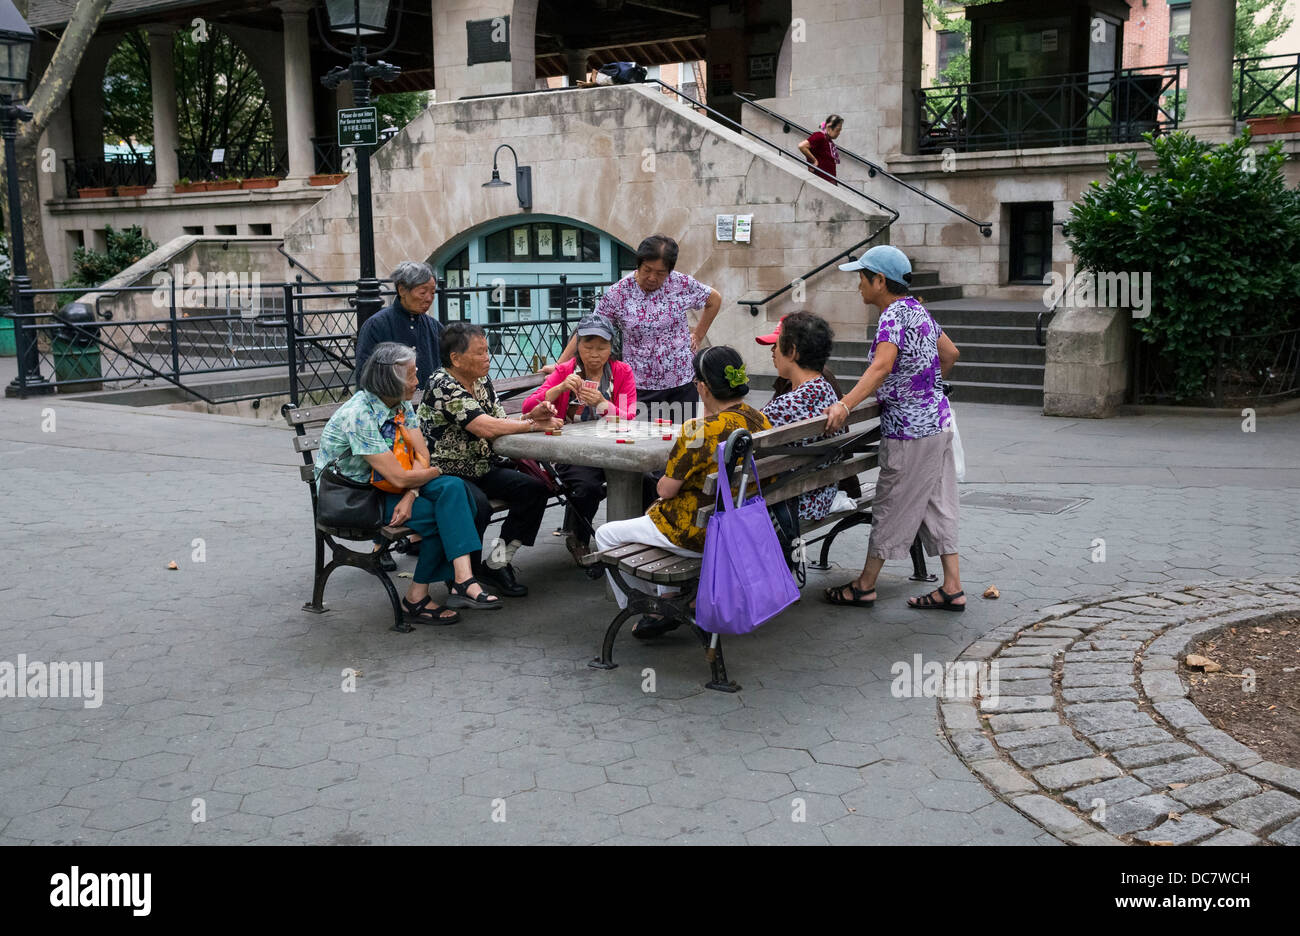 Senior Cantonese women playing cards in Columbus Park, Chinatown, New York City - Stock Image